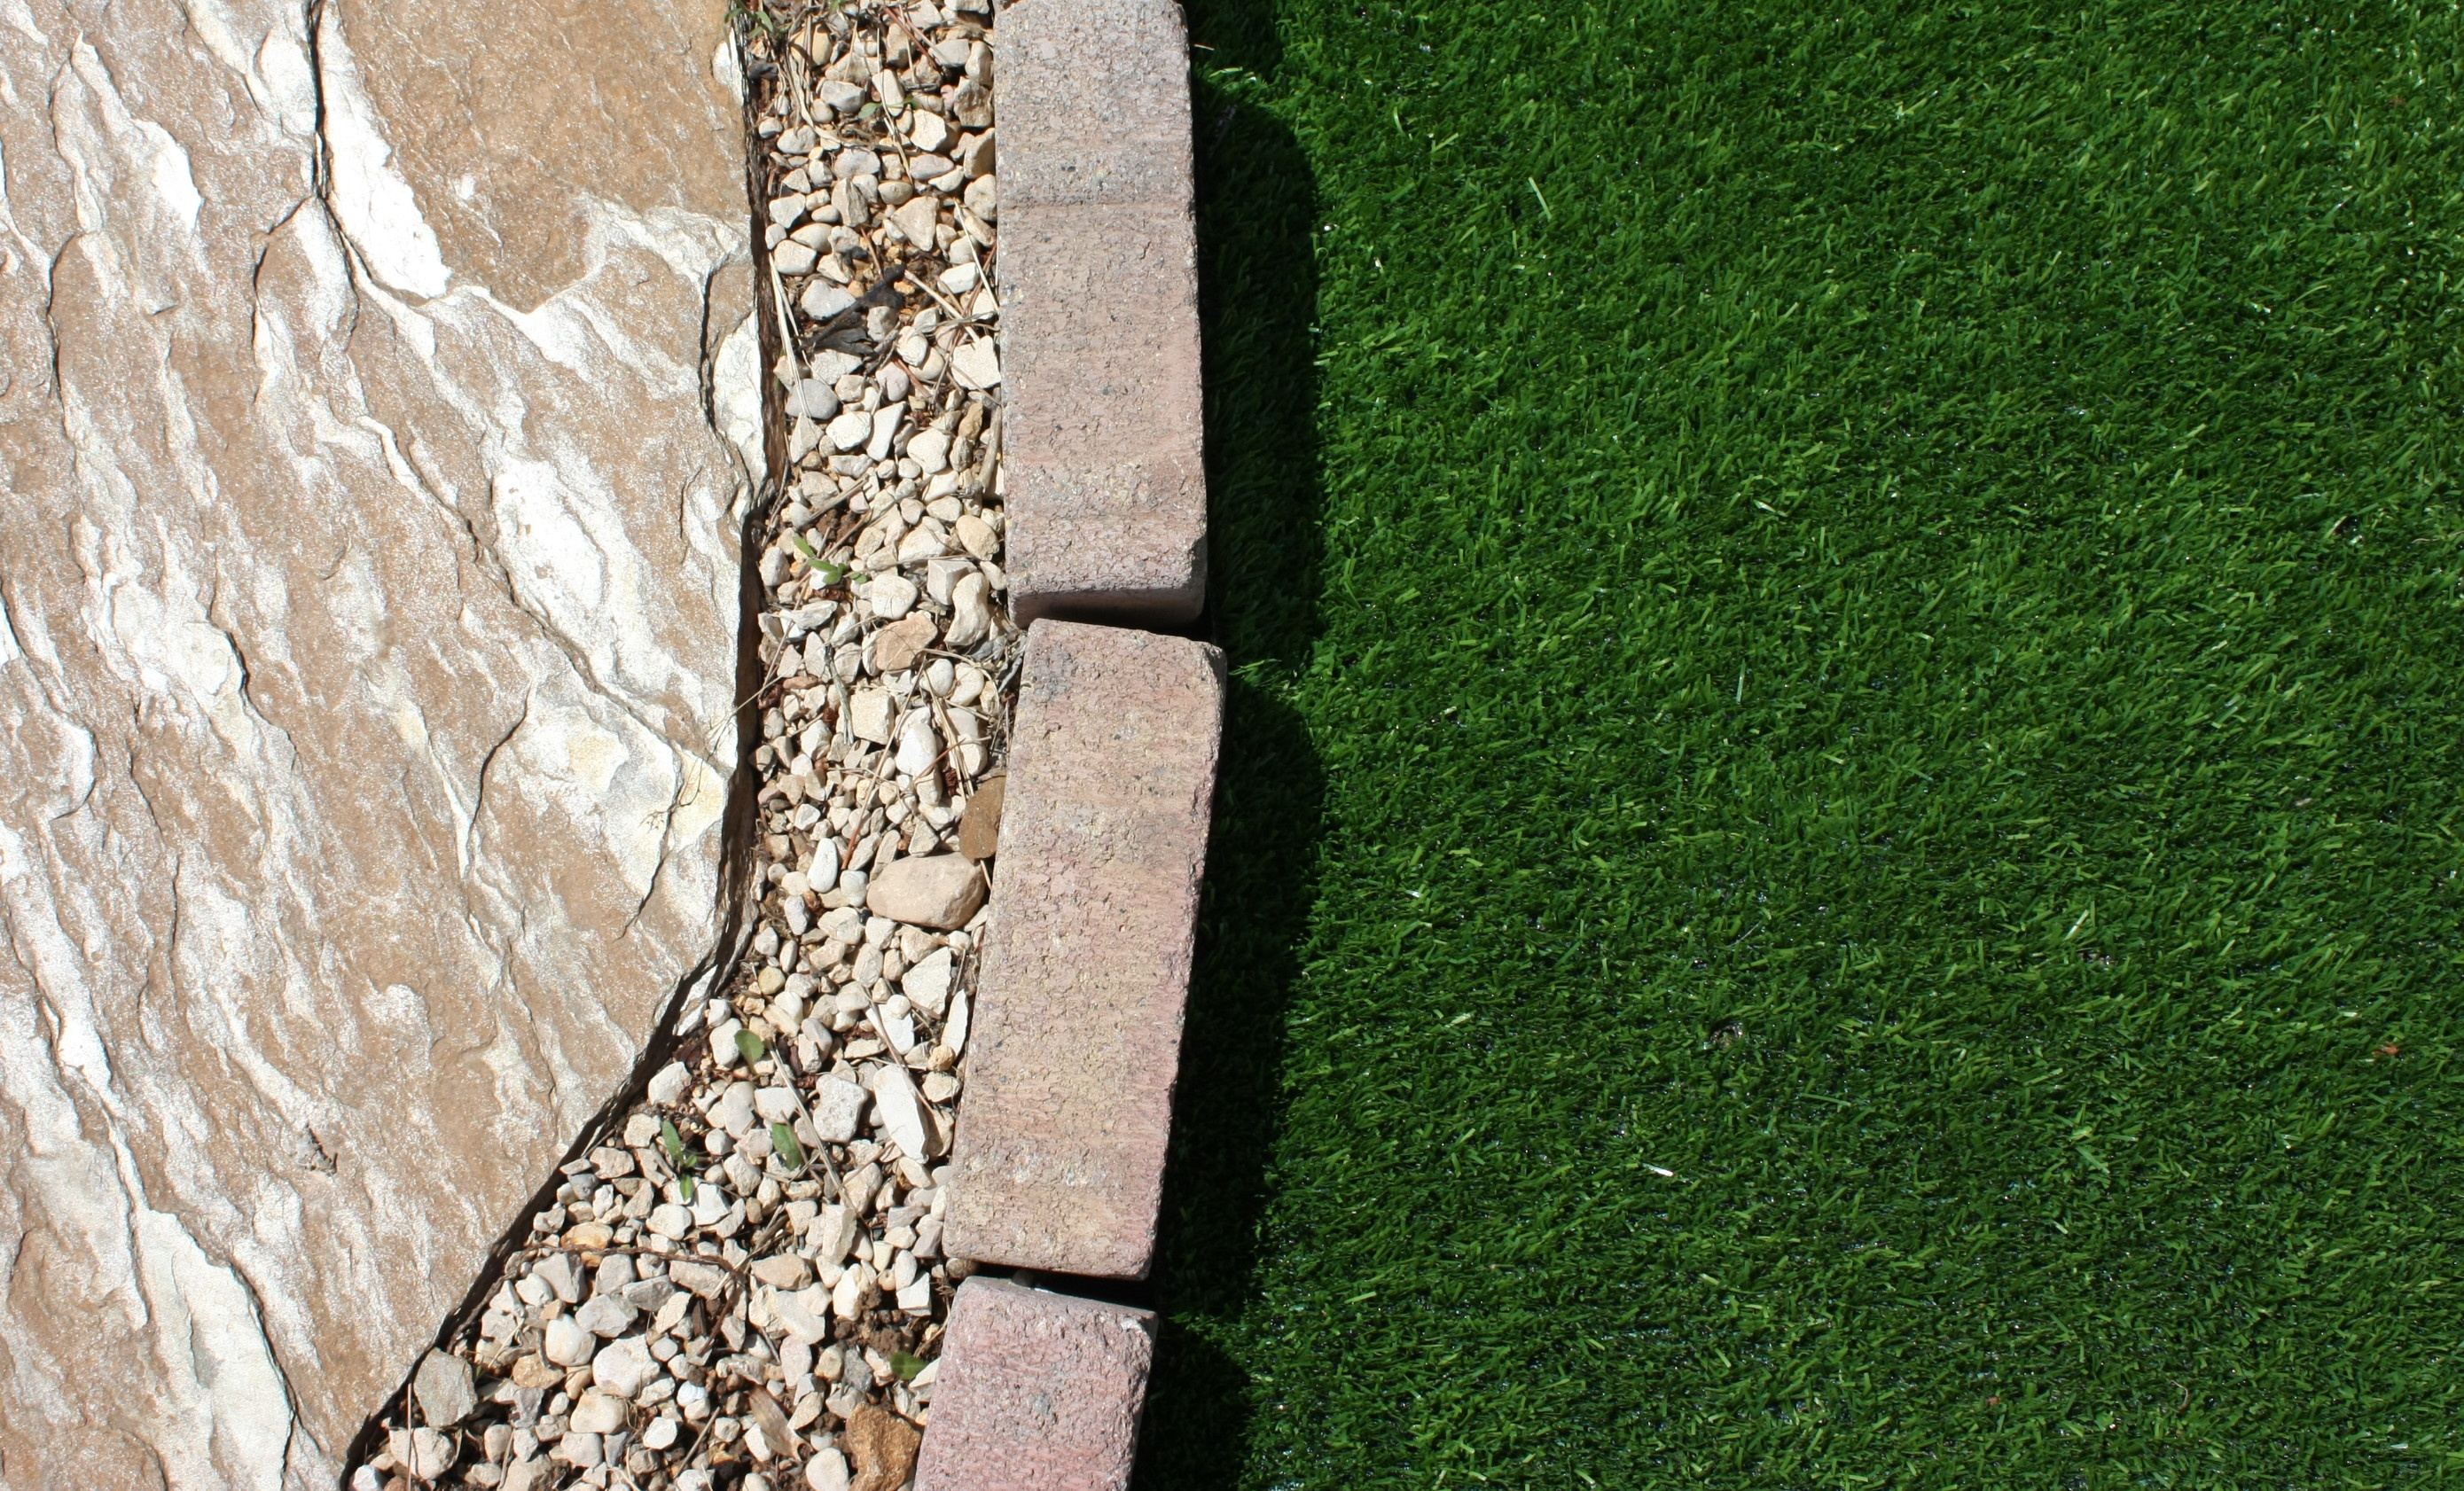 Artificial grass saves time